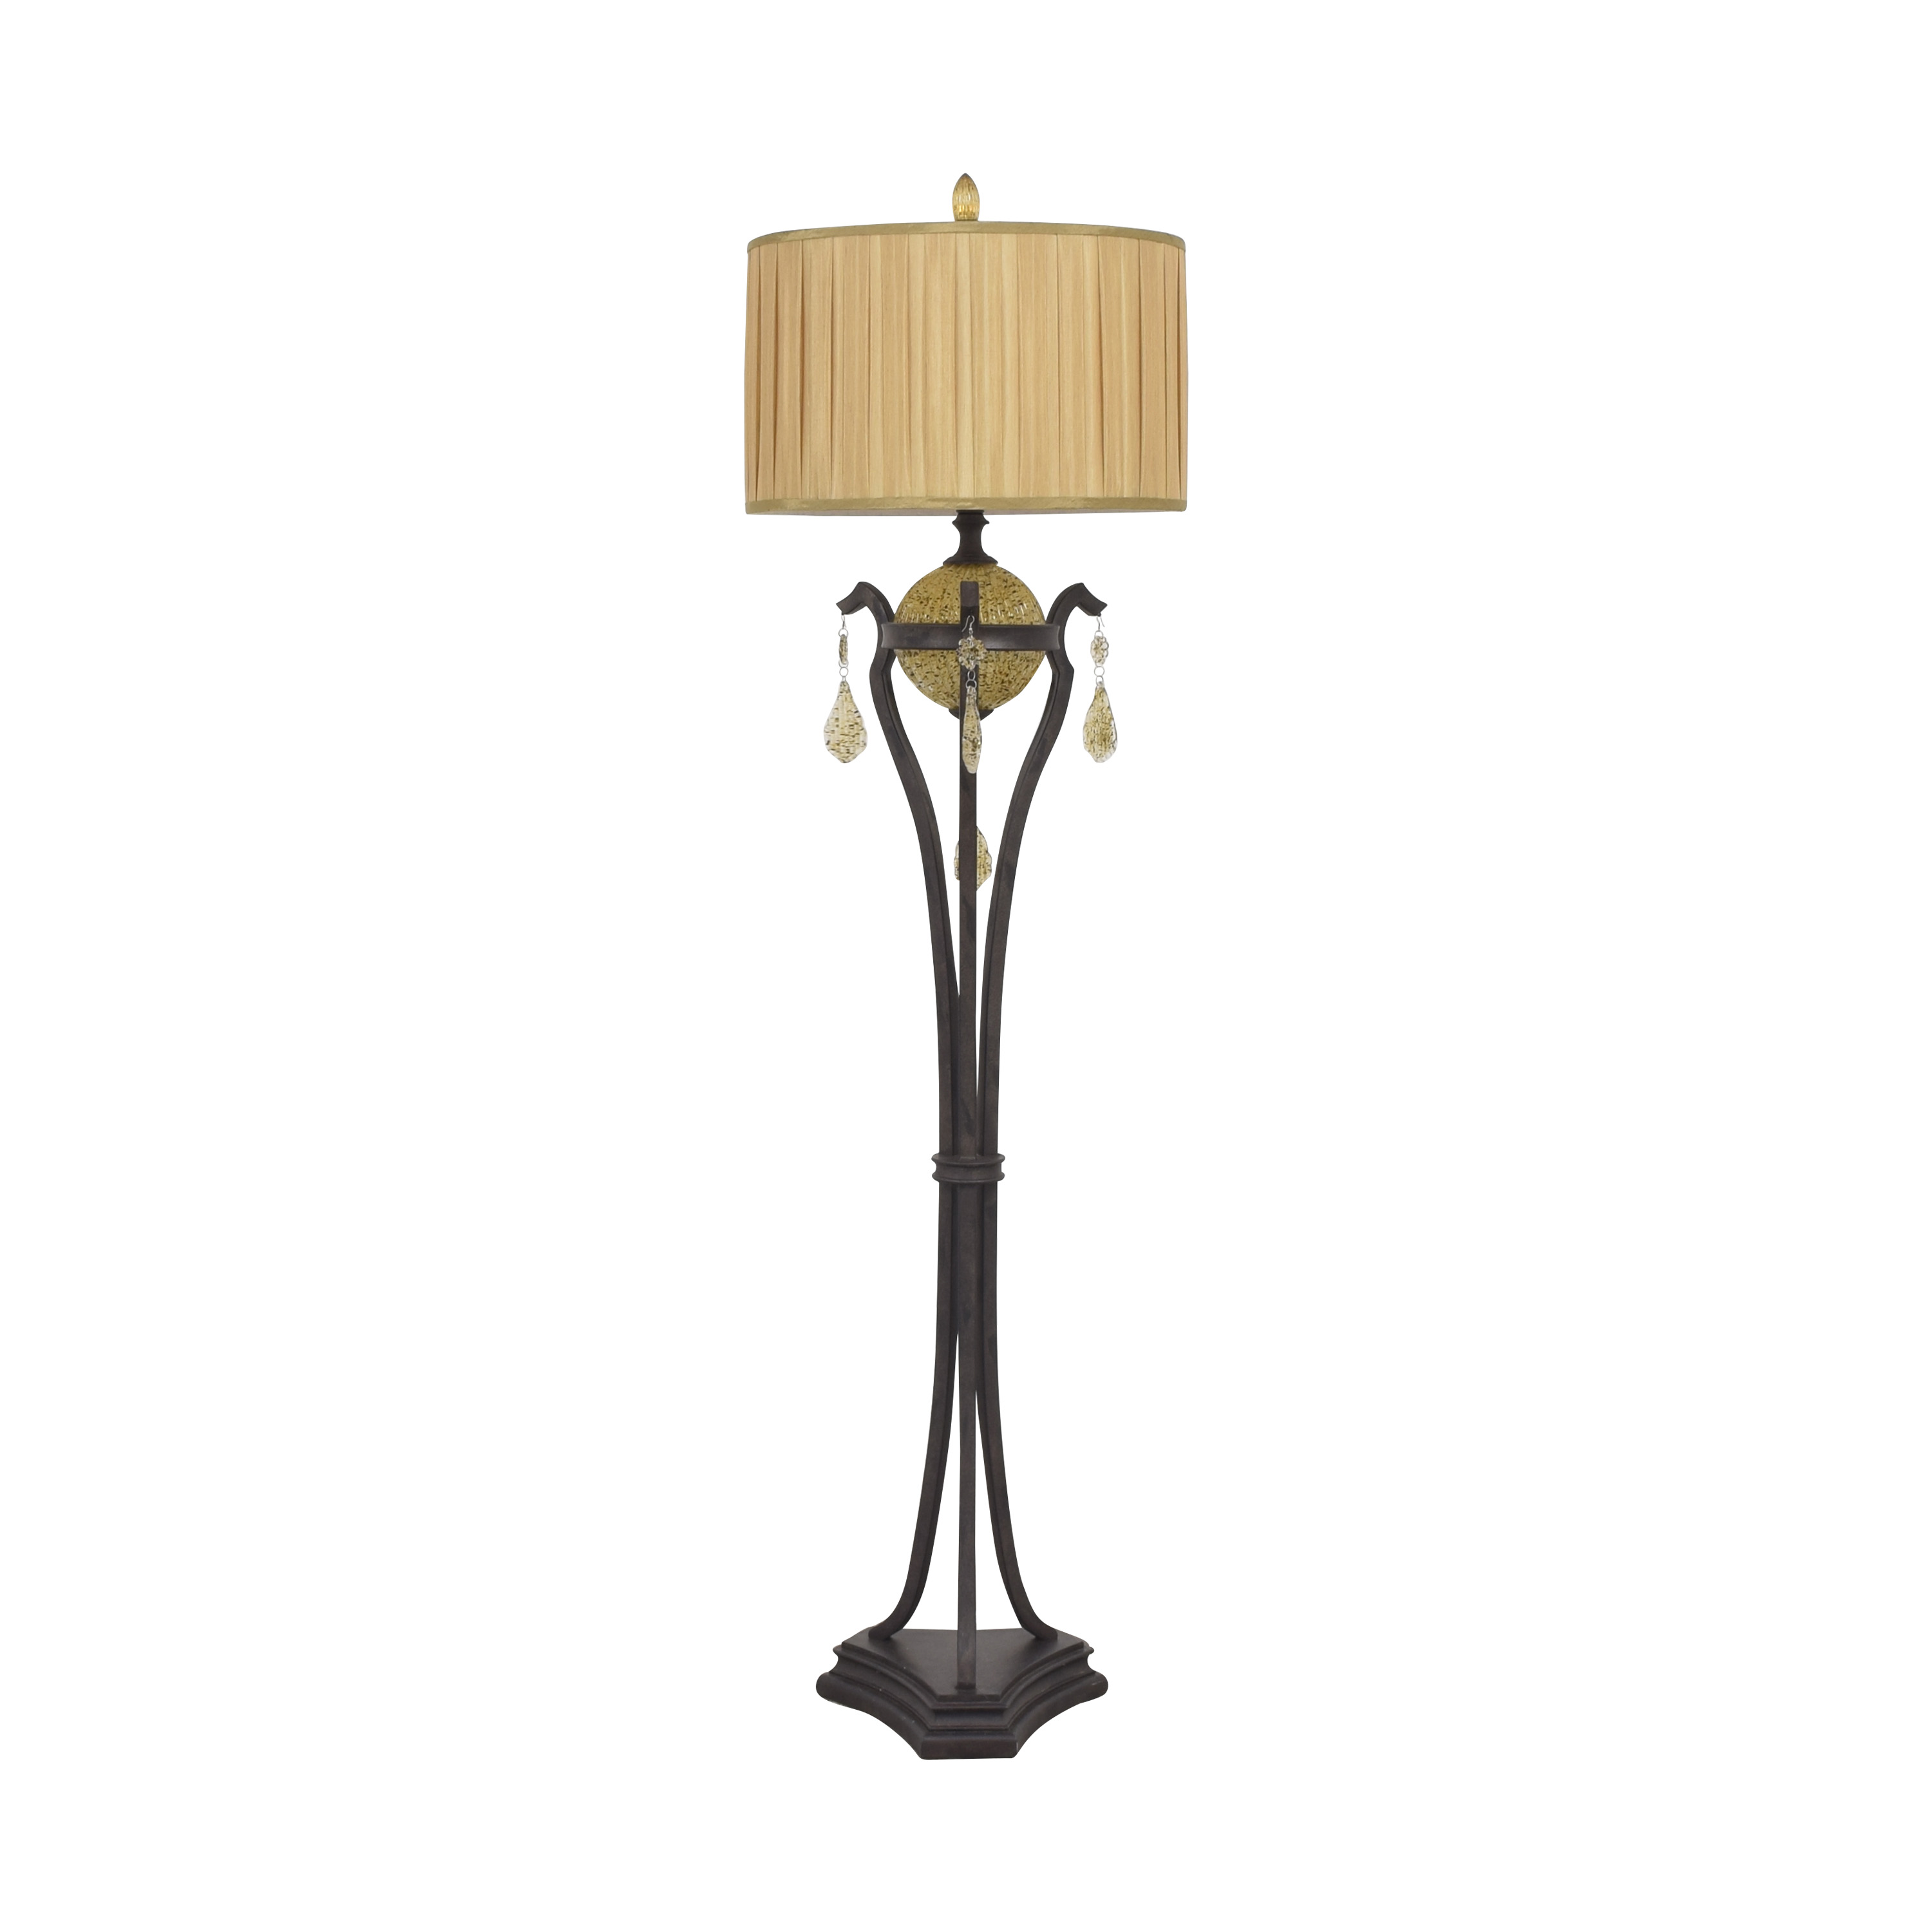 Horchow Horchow Decorative Floor Lamp Decor